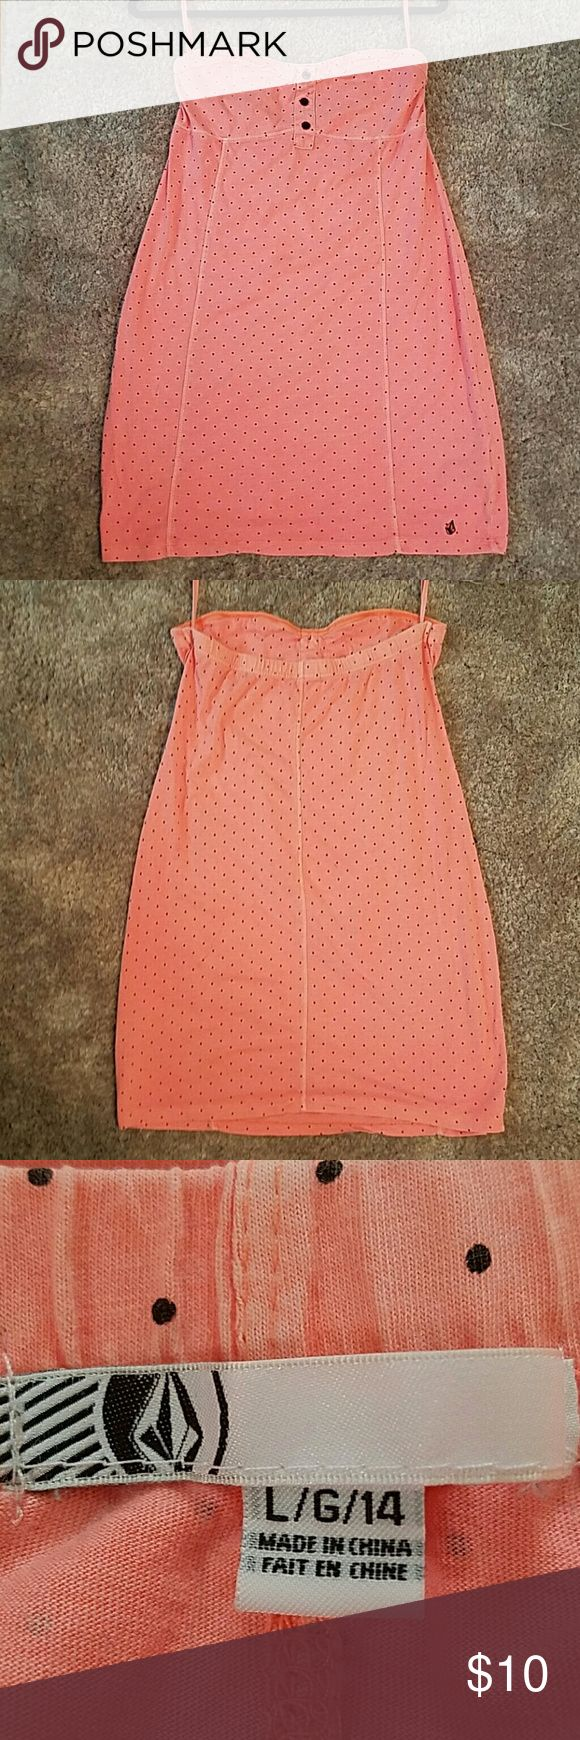 Volcom Coral Marx Dress Strapless peachy coral cuteness perfect for summer or vacation! Very flattering cut and elastic band above chest to prevent sagging or slipping. Classic volcom emblem stitched right above hem on the right side?? Volcom Dresses Strapless